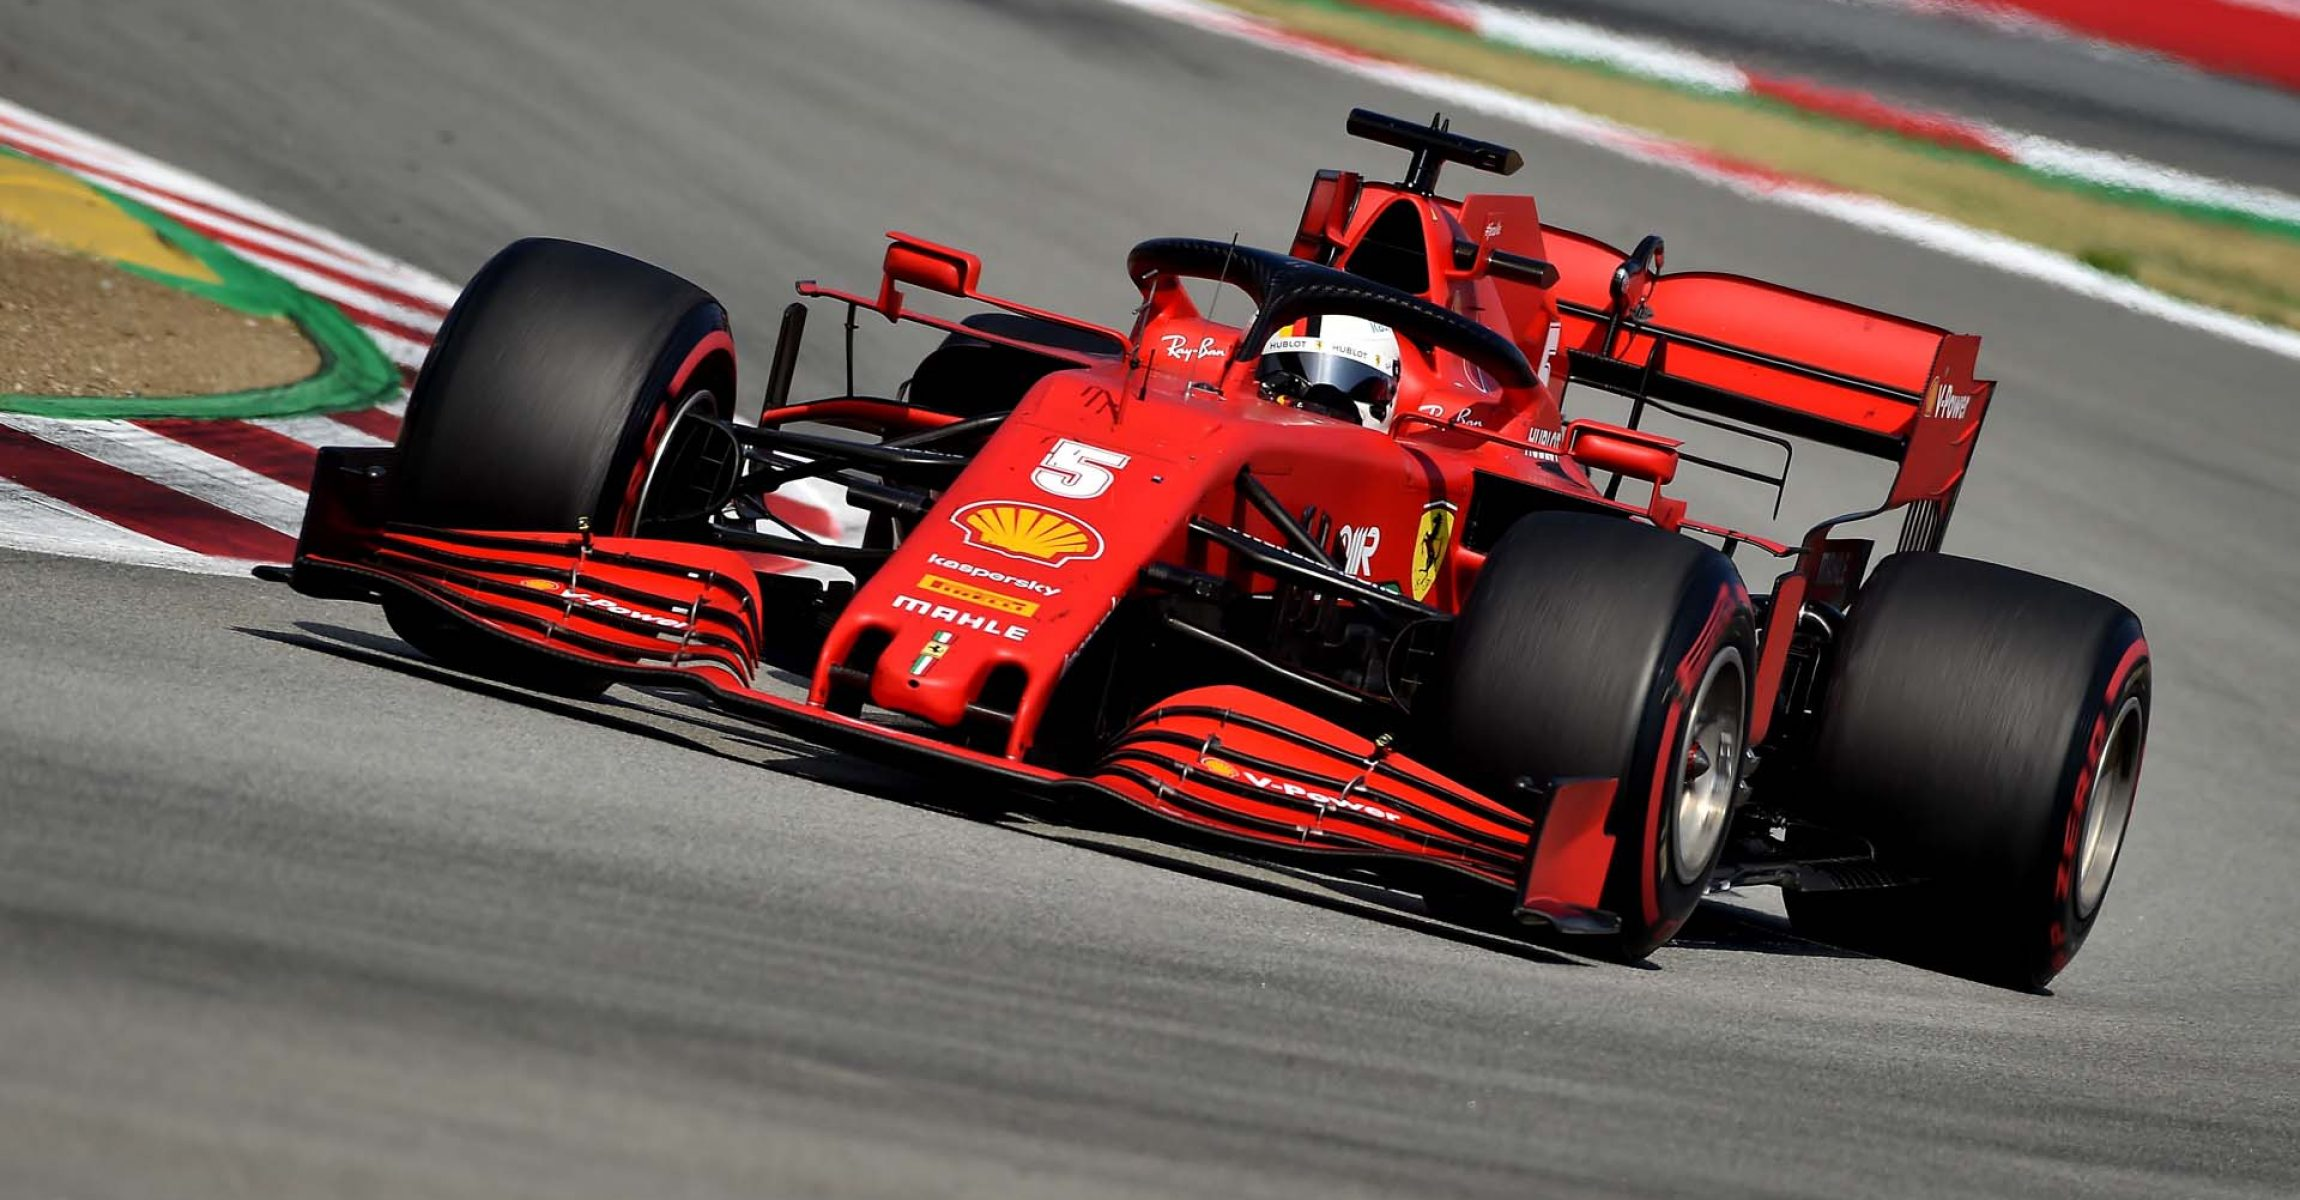 GP SPAGNA F1/2020 -  DOMENICA 16/08/2020   credit: @Scuderia Ferrari Press Office Sebastian Vettel